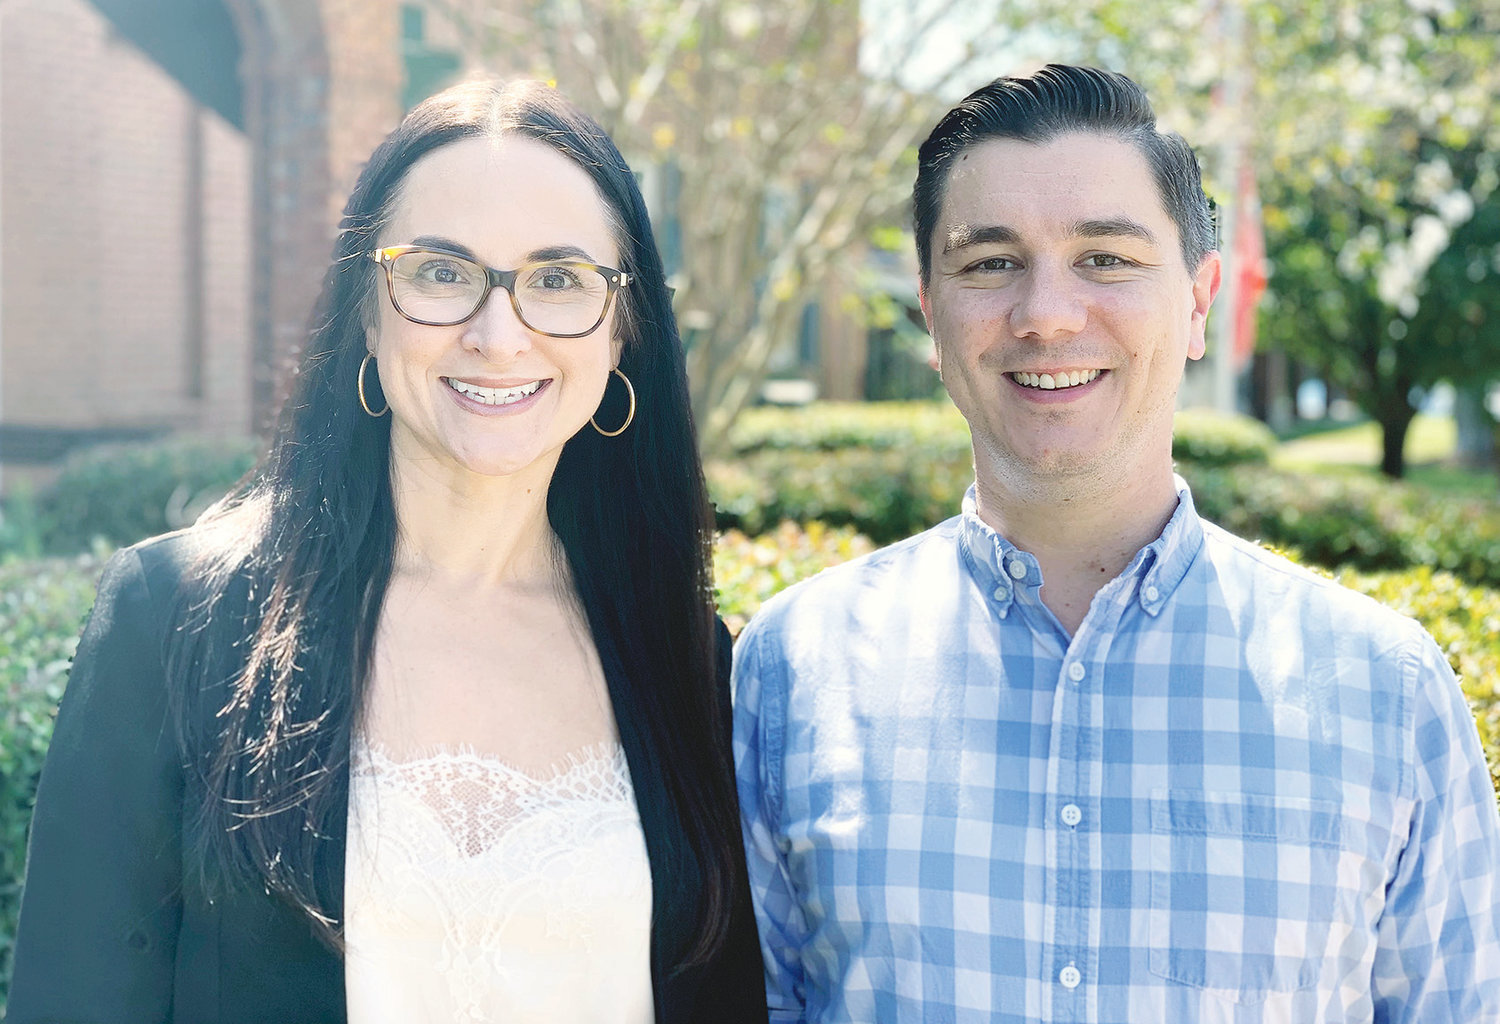 Tana-Collins Allred and Andrew Brasfield represent the Bevill State Community College public relations team that has won eight awards for their efforts to promote the college.